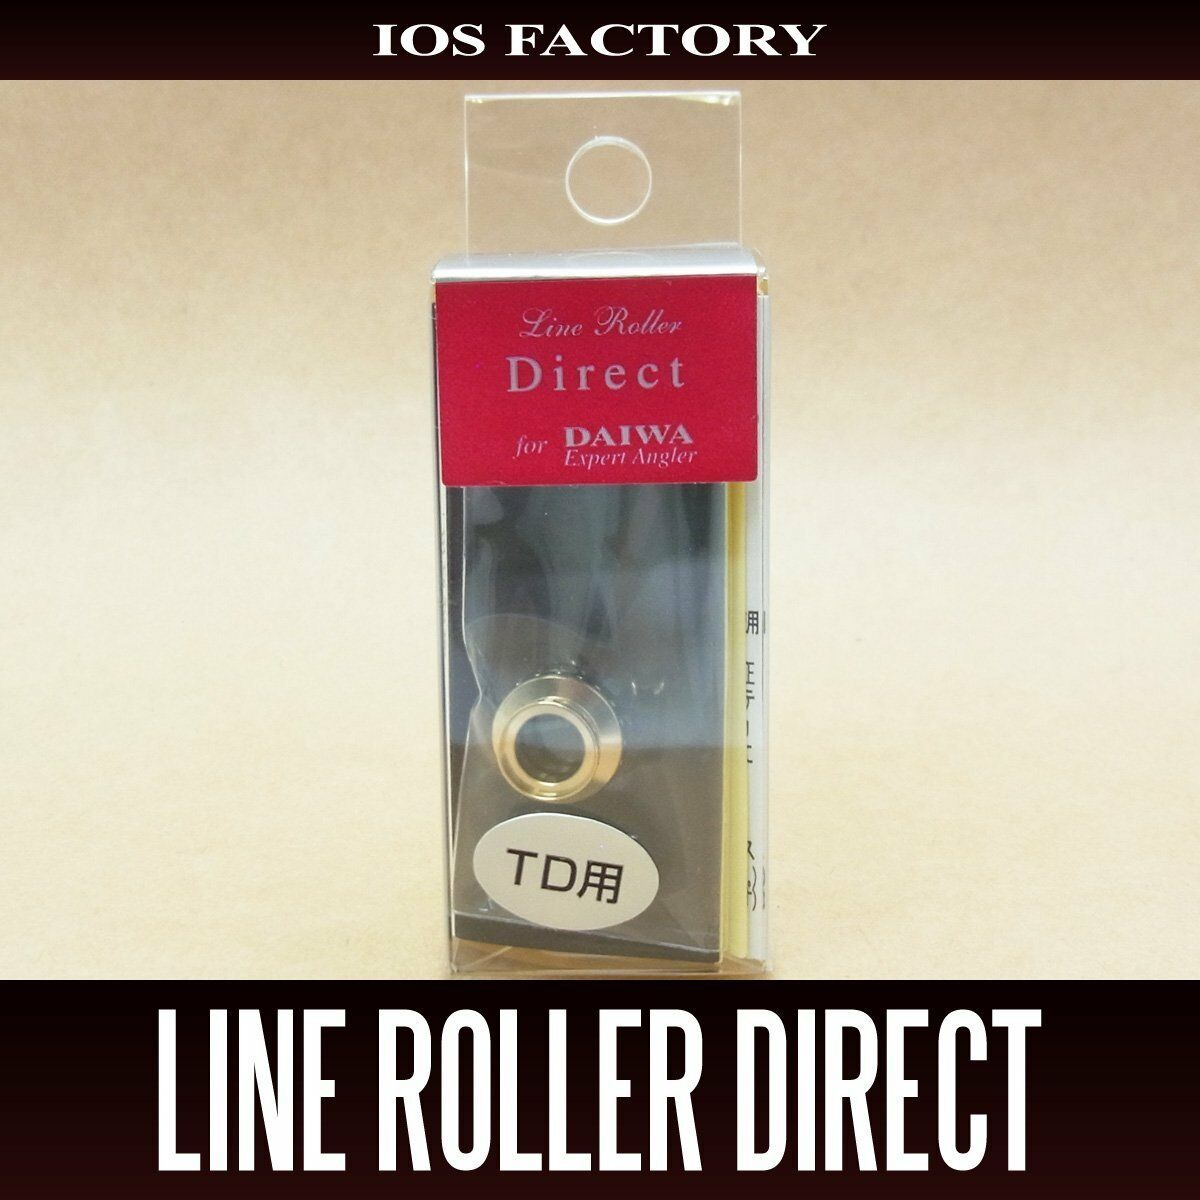 IOS FACTORY Line Roller Direct for for for DAIWA TD-TYPE GOLD d06096